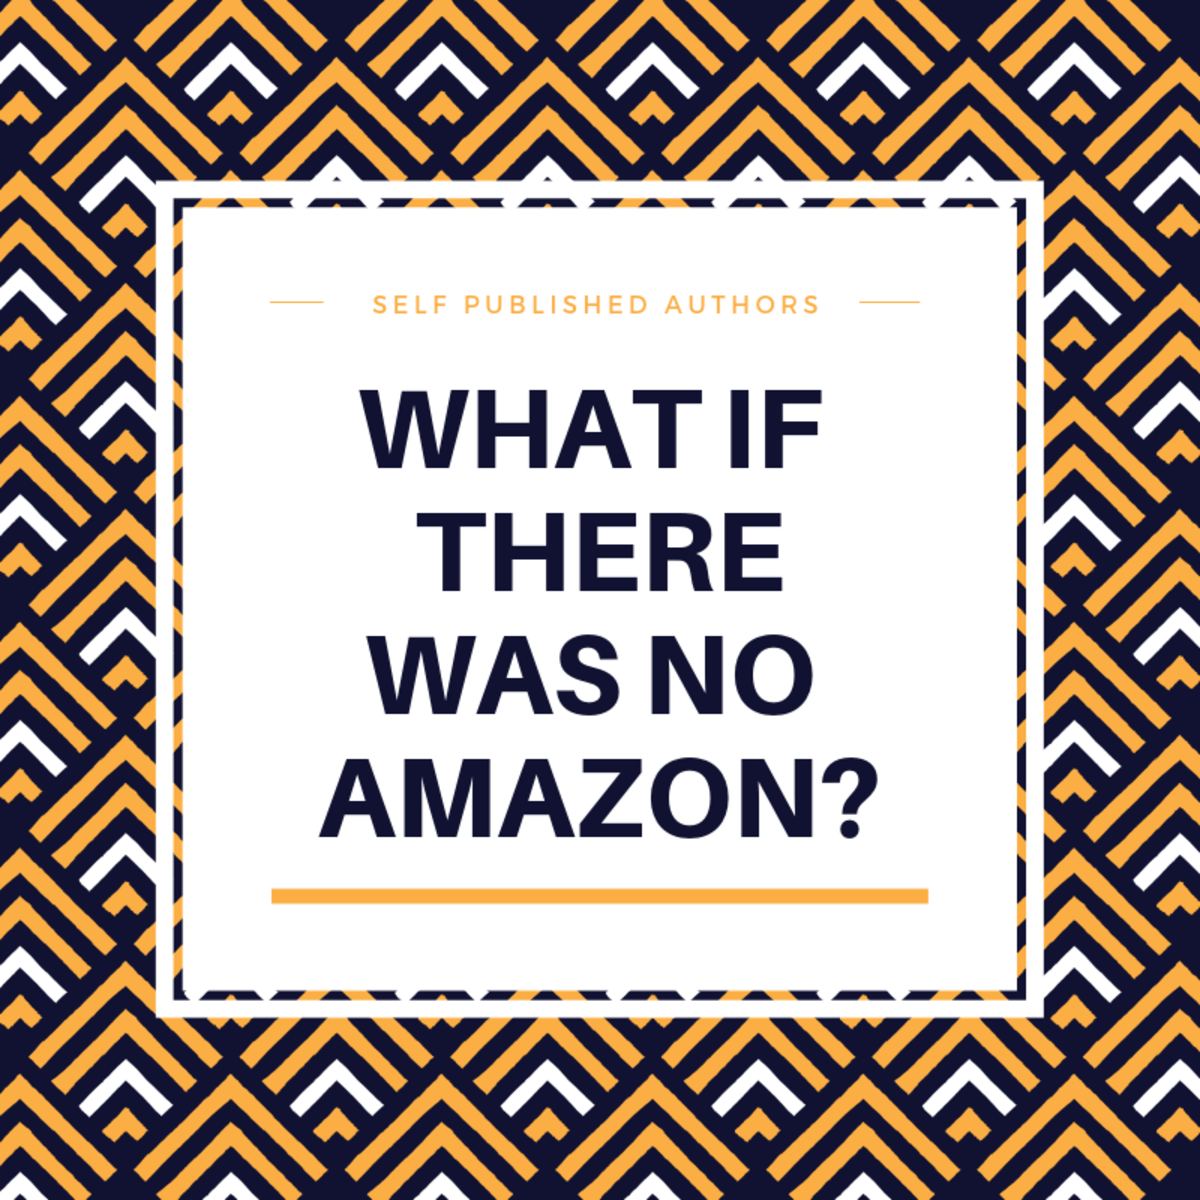 Self Published Authors, What If There Was No Amazon?